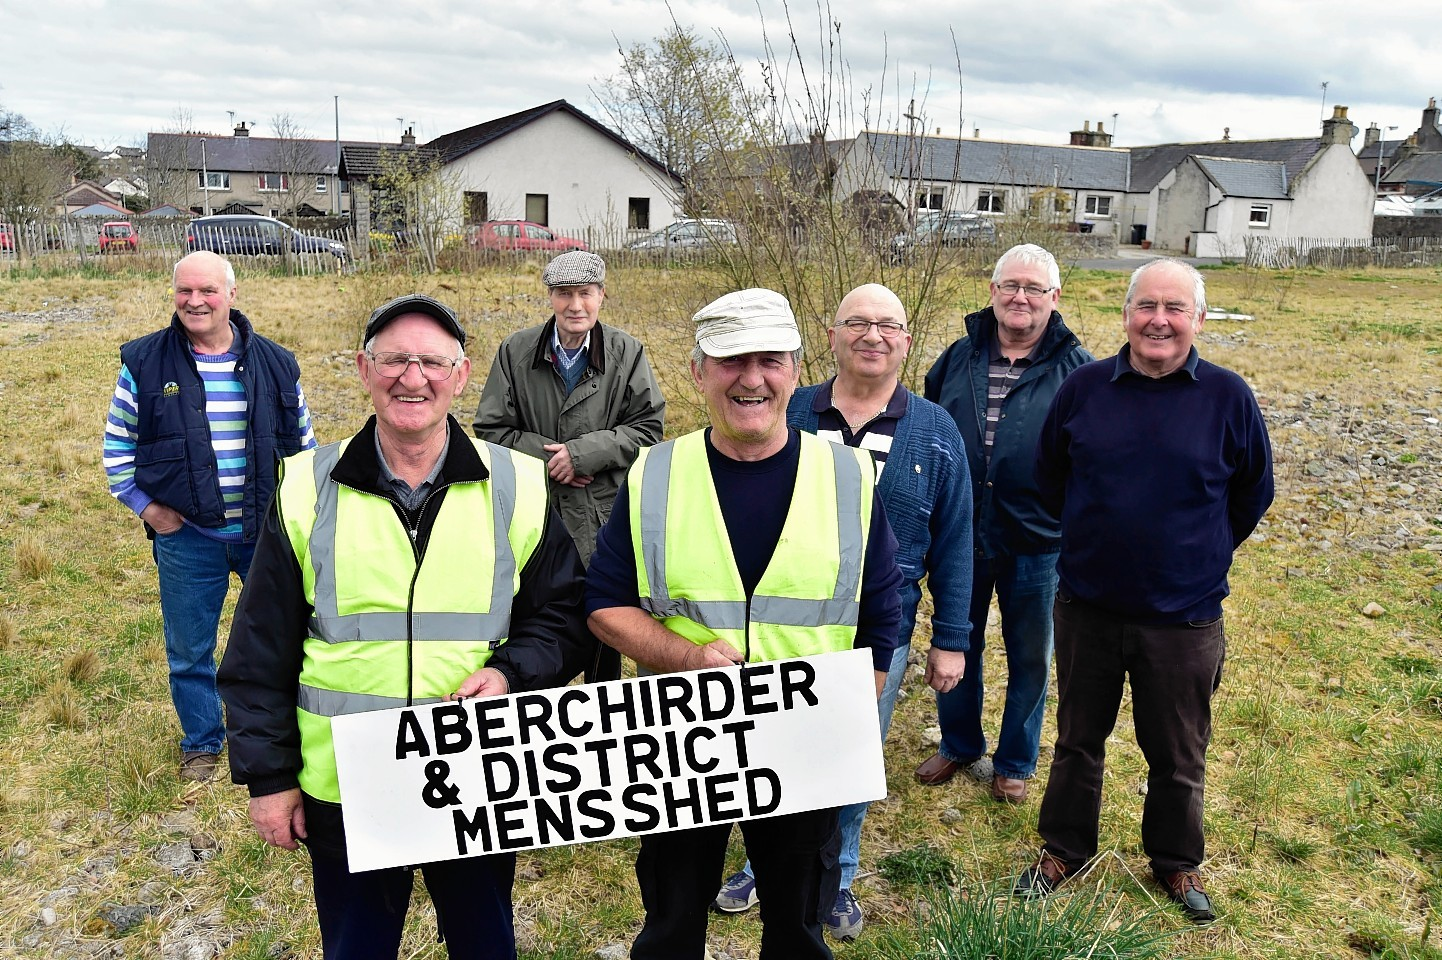 In 2017 CELEBRATING AT ABERCHIRDER  ON THE GROUND THEY HAVE SECURED TO BUILD THEIR MENS SHED ARE (WITH SIGN) KENNY CHRISTIE, CHAIRMAN AND DOD CHRISTIE VICE CHAIRMAN.LOOKING ON ARE (L TO R) BILL LEGGE, ALEXANDER SYMON, JIM PATERSON, DAVID CHALMERS AND MIKE O'BRIEN.